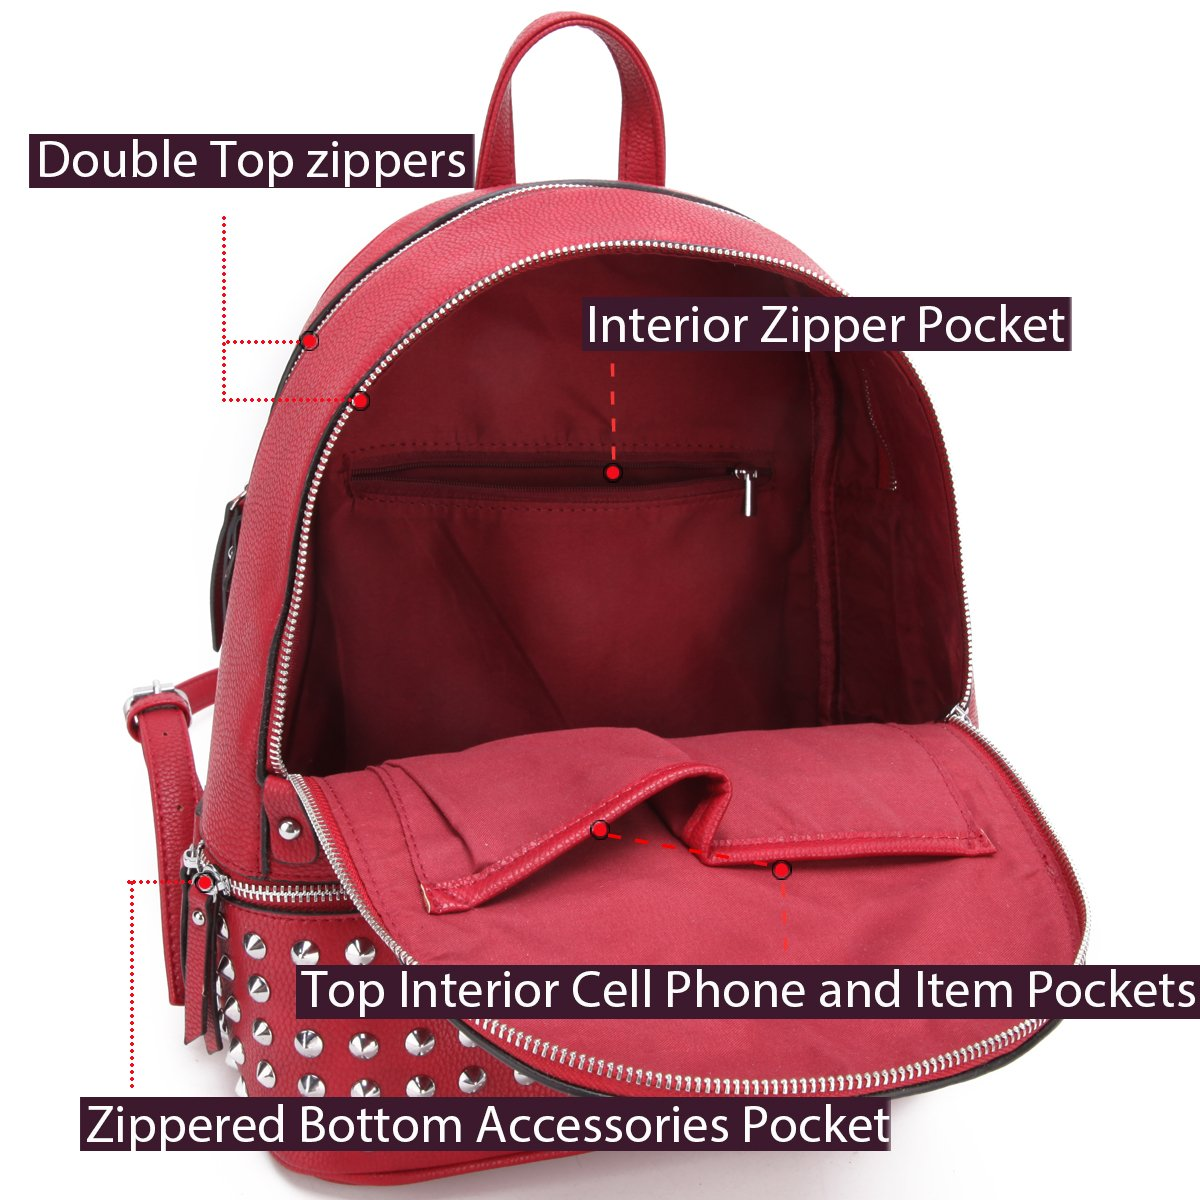 MMK collection Women Fashion Backpack with wallet (2443)~Designer Purse for Women ~Multi Pocket Backpack~ Beautiful Designer Handbag Set(2443/7025) (MA-XL-21-7580-RD 168 RD) by Marco M. Kerry (Image #7)